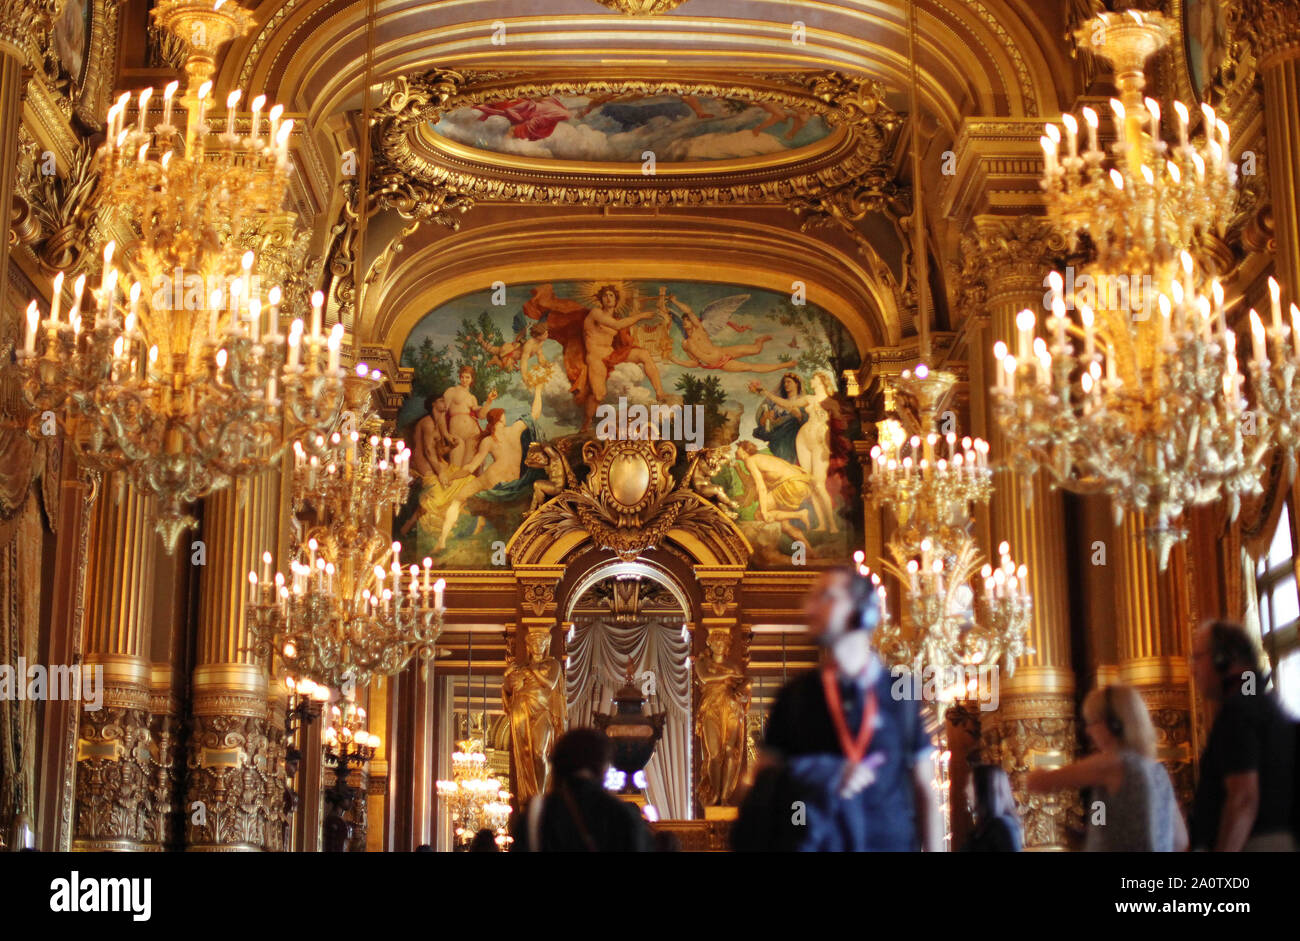 Paris, France. 21st Sep, 2019. People visit the Paris Opera Theater during the European Heritage Days in Paris, France, Sept. 21, 2019. Historical heritage sites are open to public this weekend in France to mark the European Heritages Days, which are held in September each year. The European Heritages Days are the most widely celebrated participatory cultural event shared by the citizens of Europe. Credit: Gao Jing/Xinhua/Alamy Live News Stock Photo